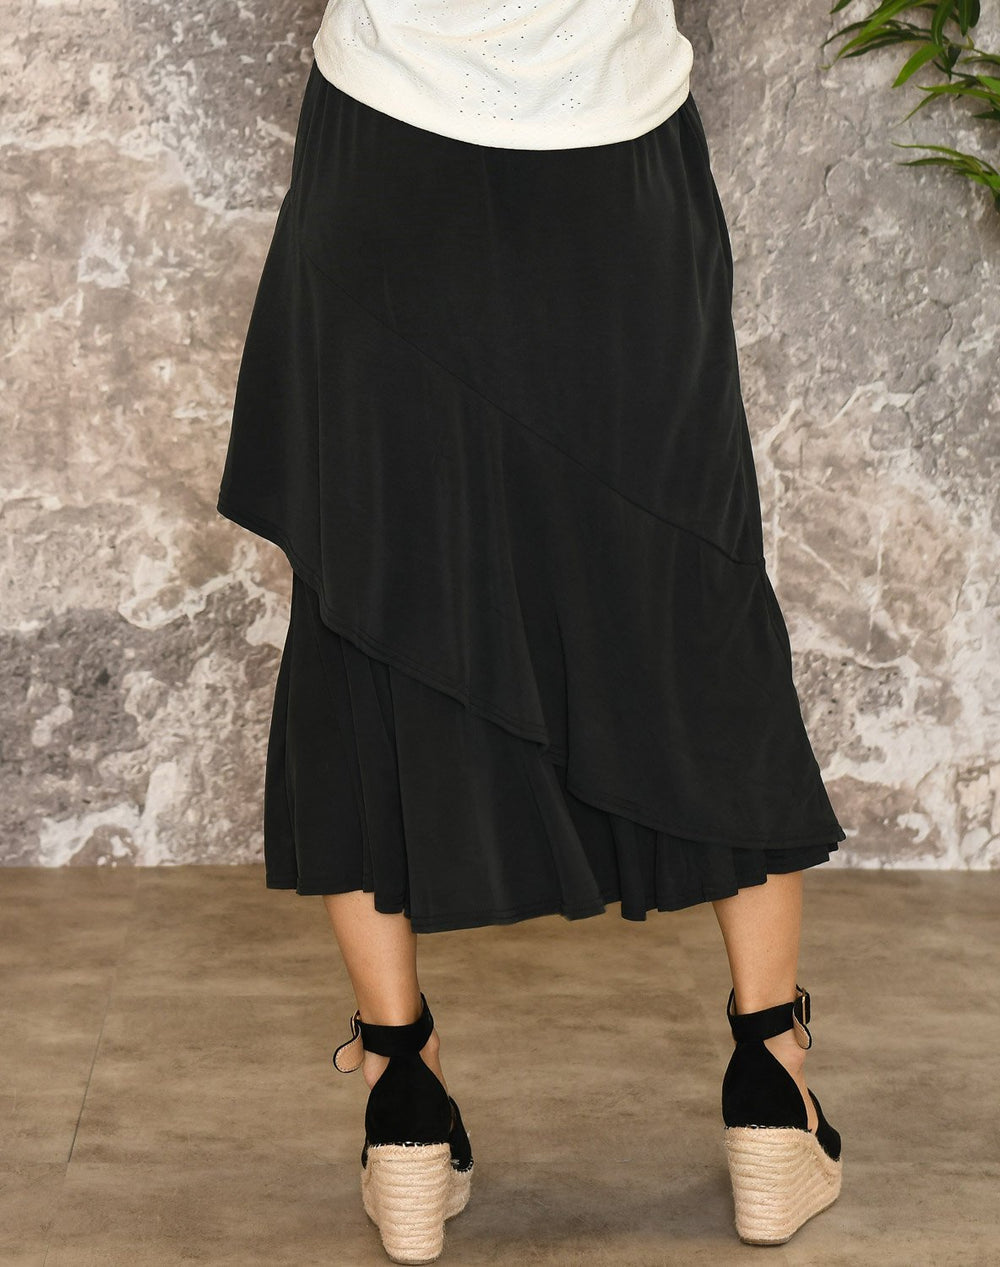 Culture CUkajsa skirt black - Online-Mode